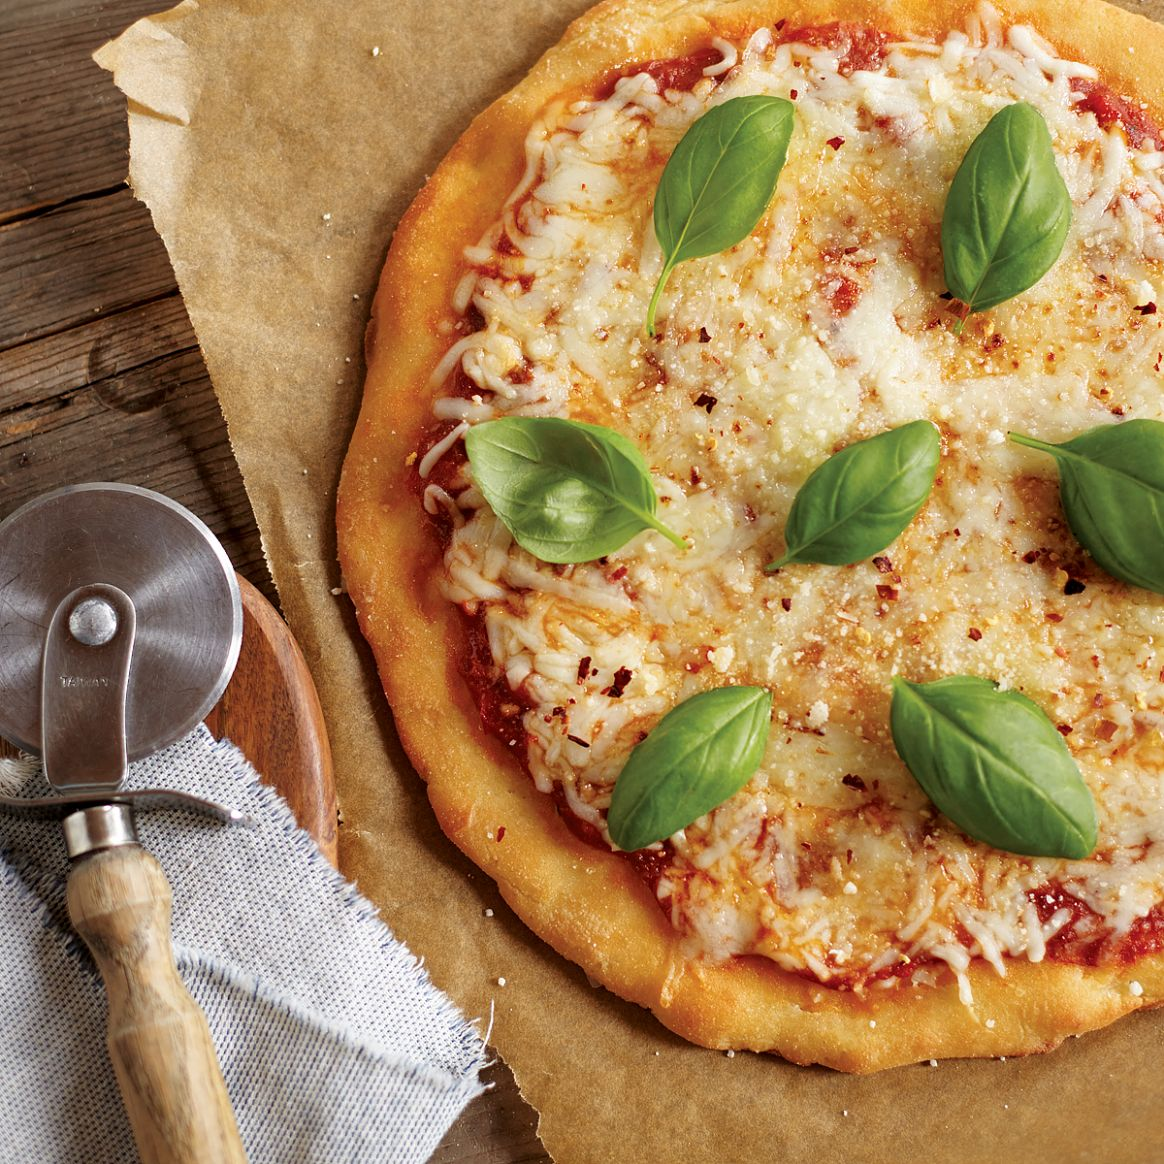 Gluten Free* Pizza Crust - Recipes With Refrigerated Pizza Crust